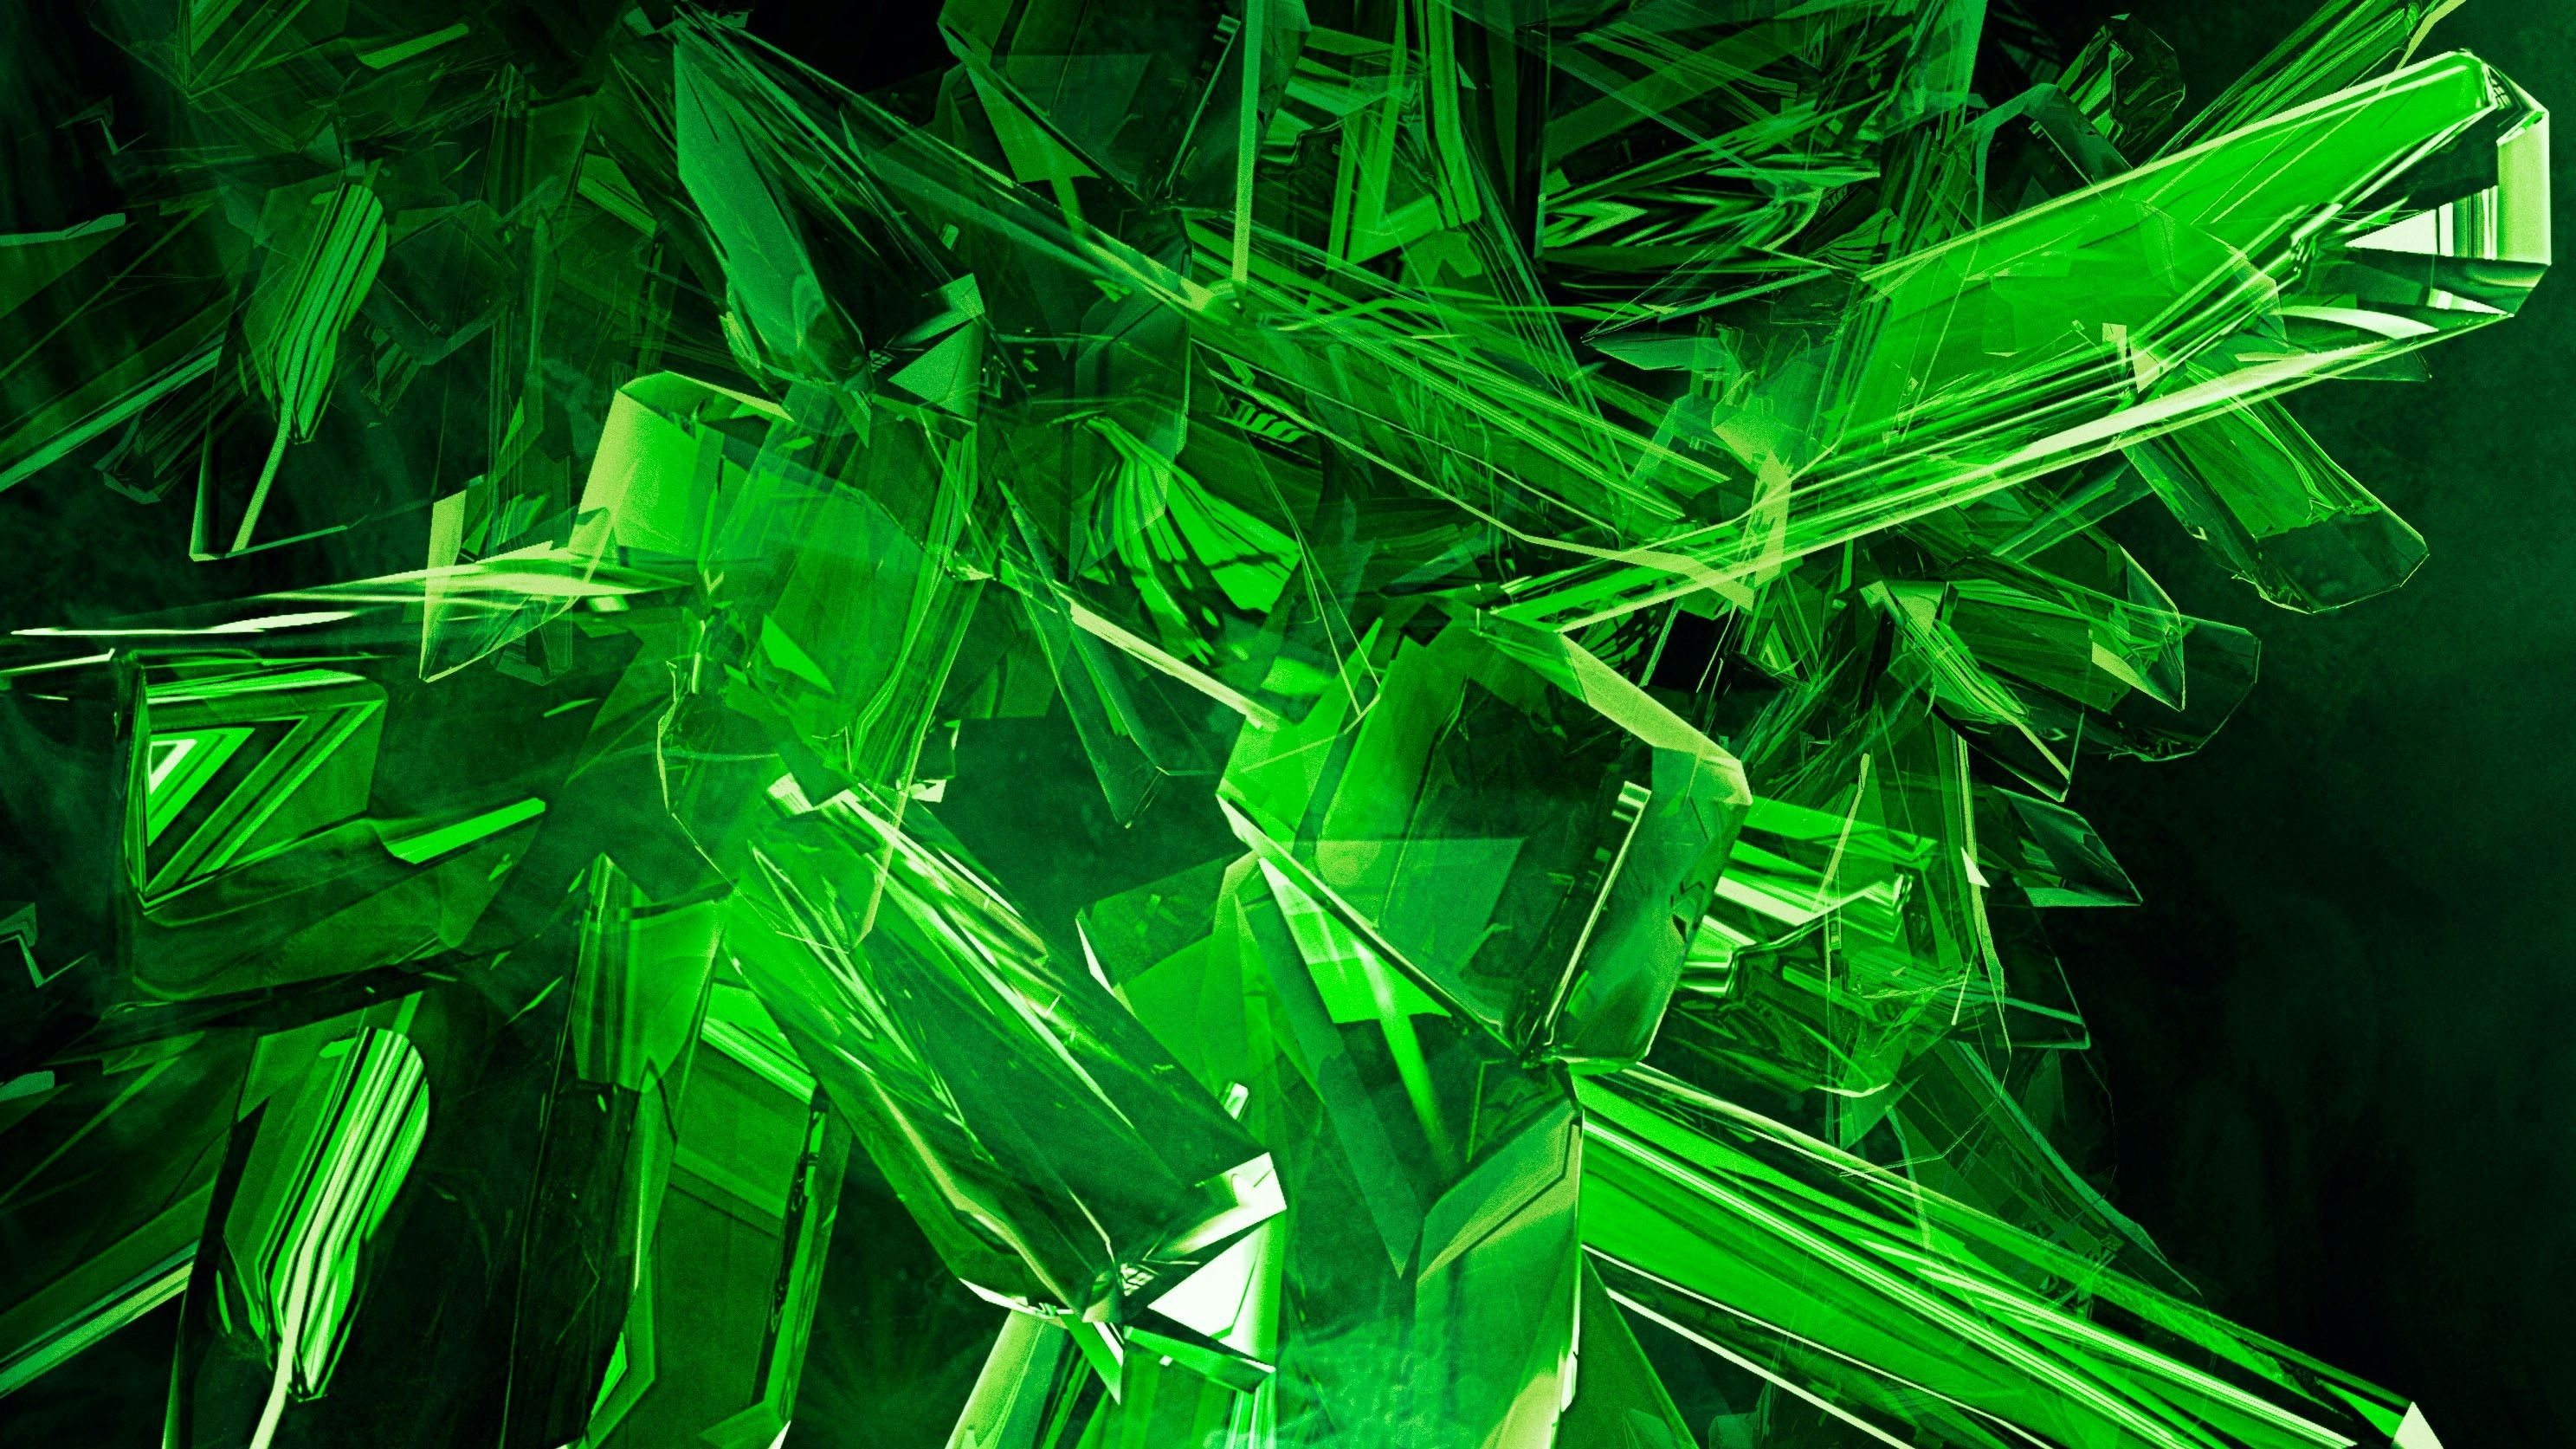 Green Cool Phone Wallpapers Top Free Green Cool Phone